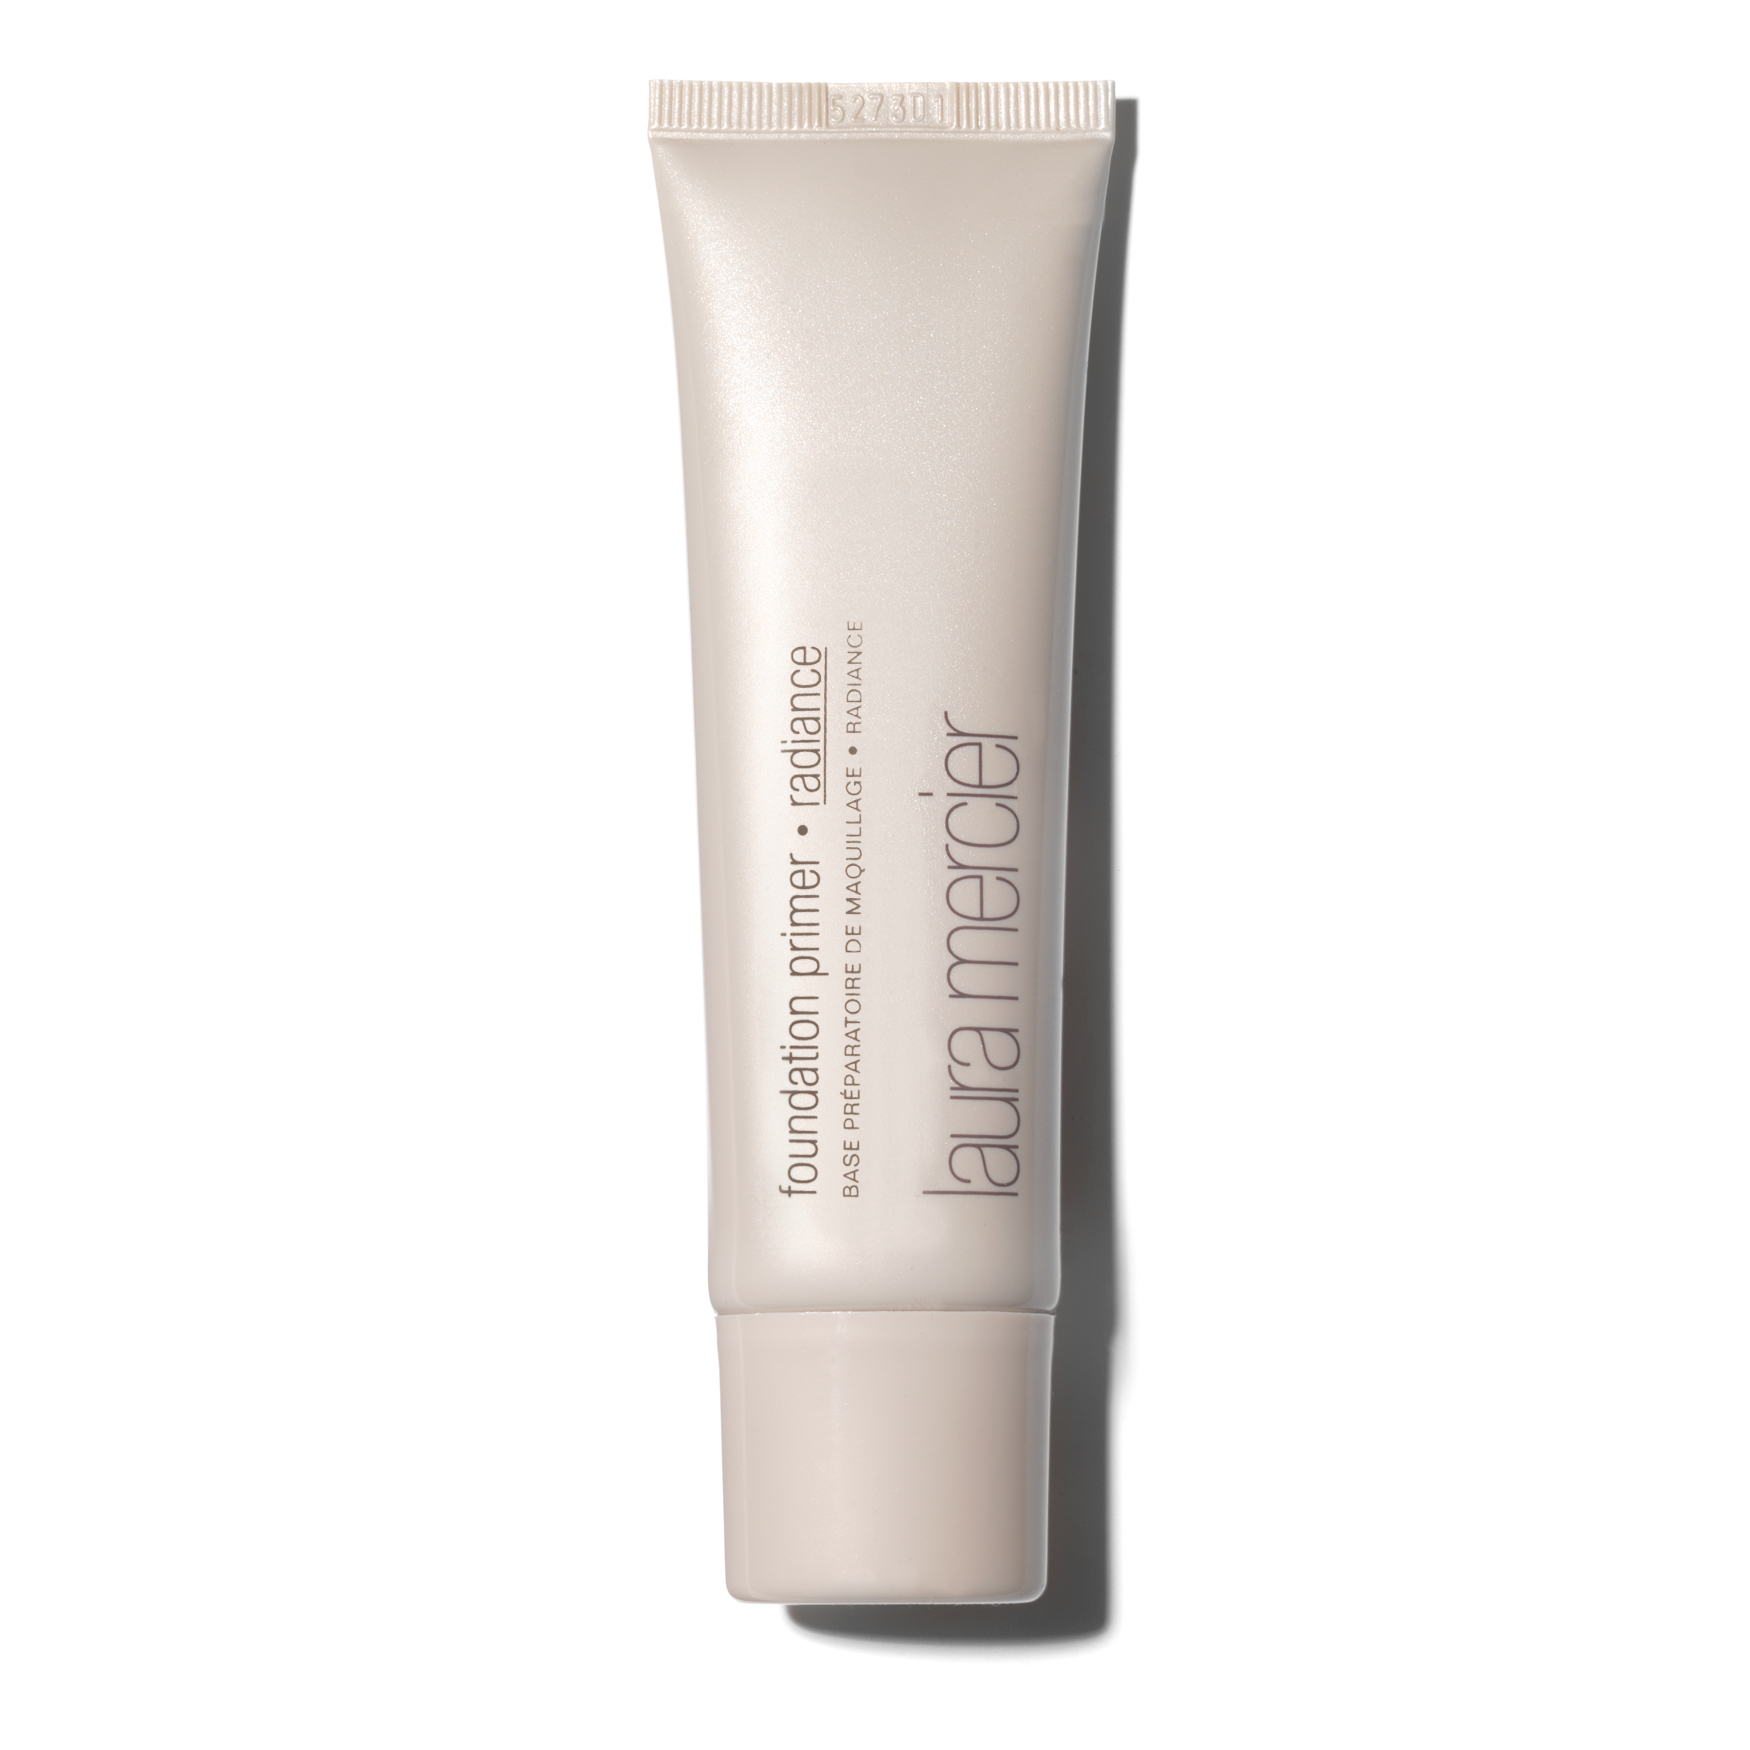 Watch The One Thing: Laura Mercier Radiance FoundationPrimer video